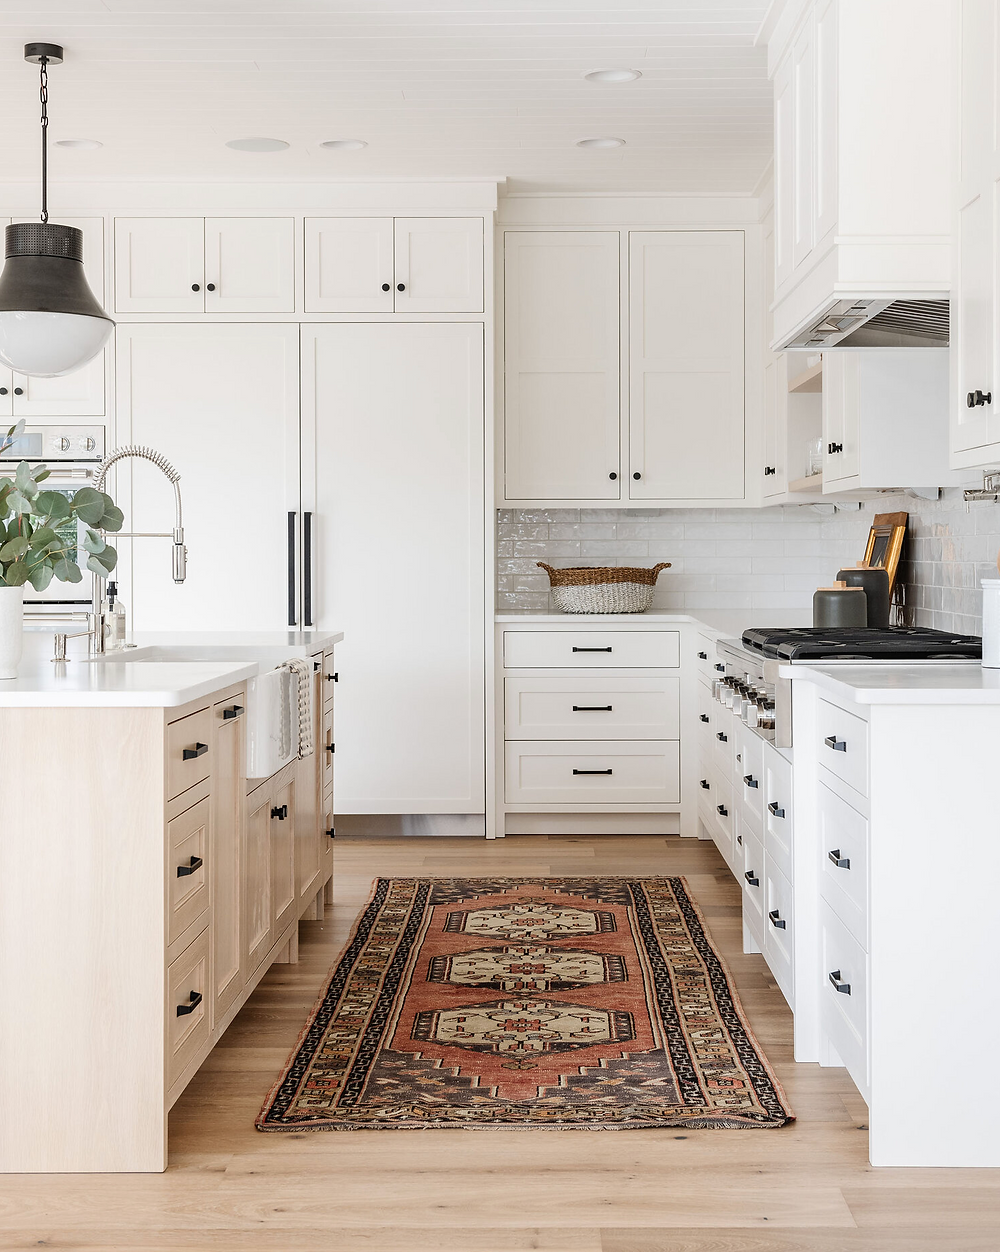 A white kitchen with black hardware and a moroccan style rug.